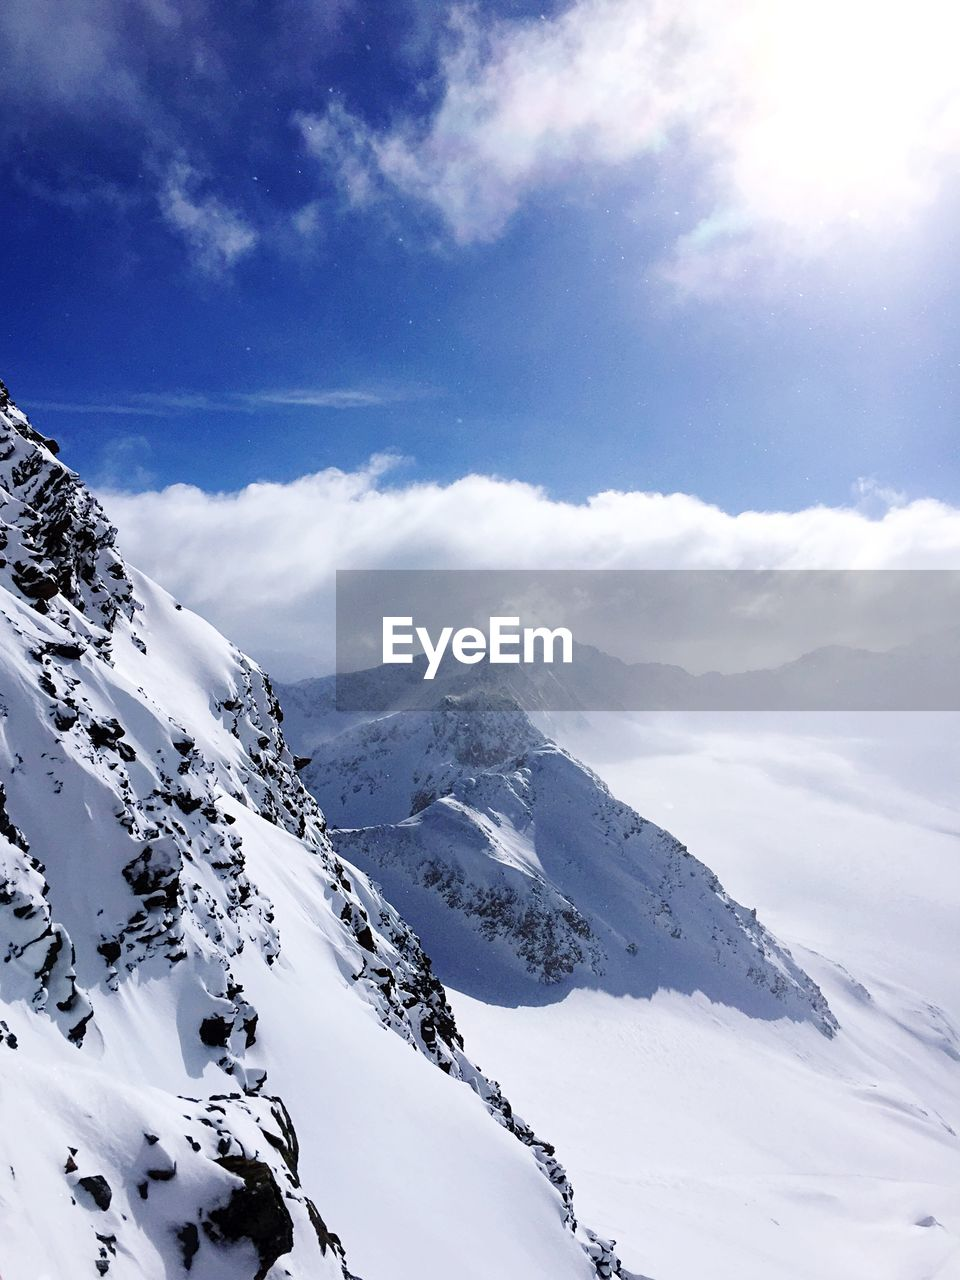 snow, winter, cold temperature, beauty in nature, tranquil scene, tranquility, scenics, nature, mountain, weather, white color, sky, cloud - sky, snowcapped mountain, no people, outdoors, mountain range, day, physical geography, landscape